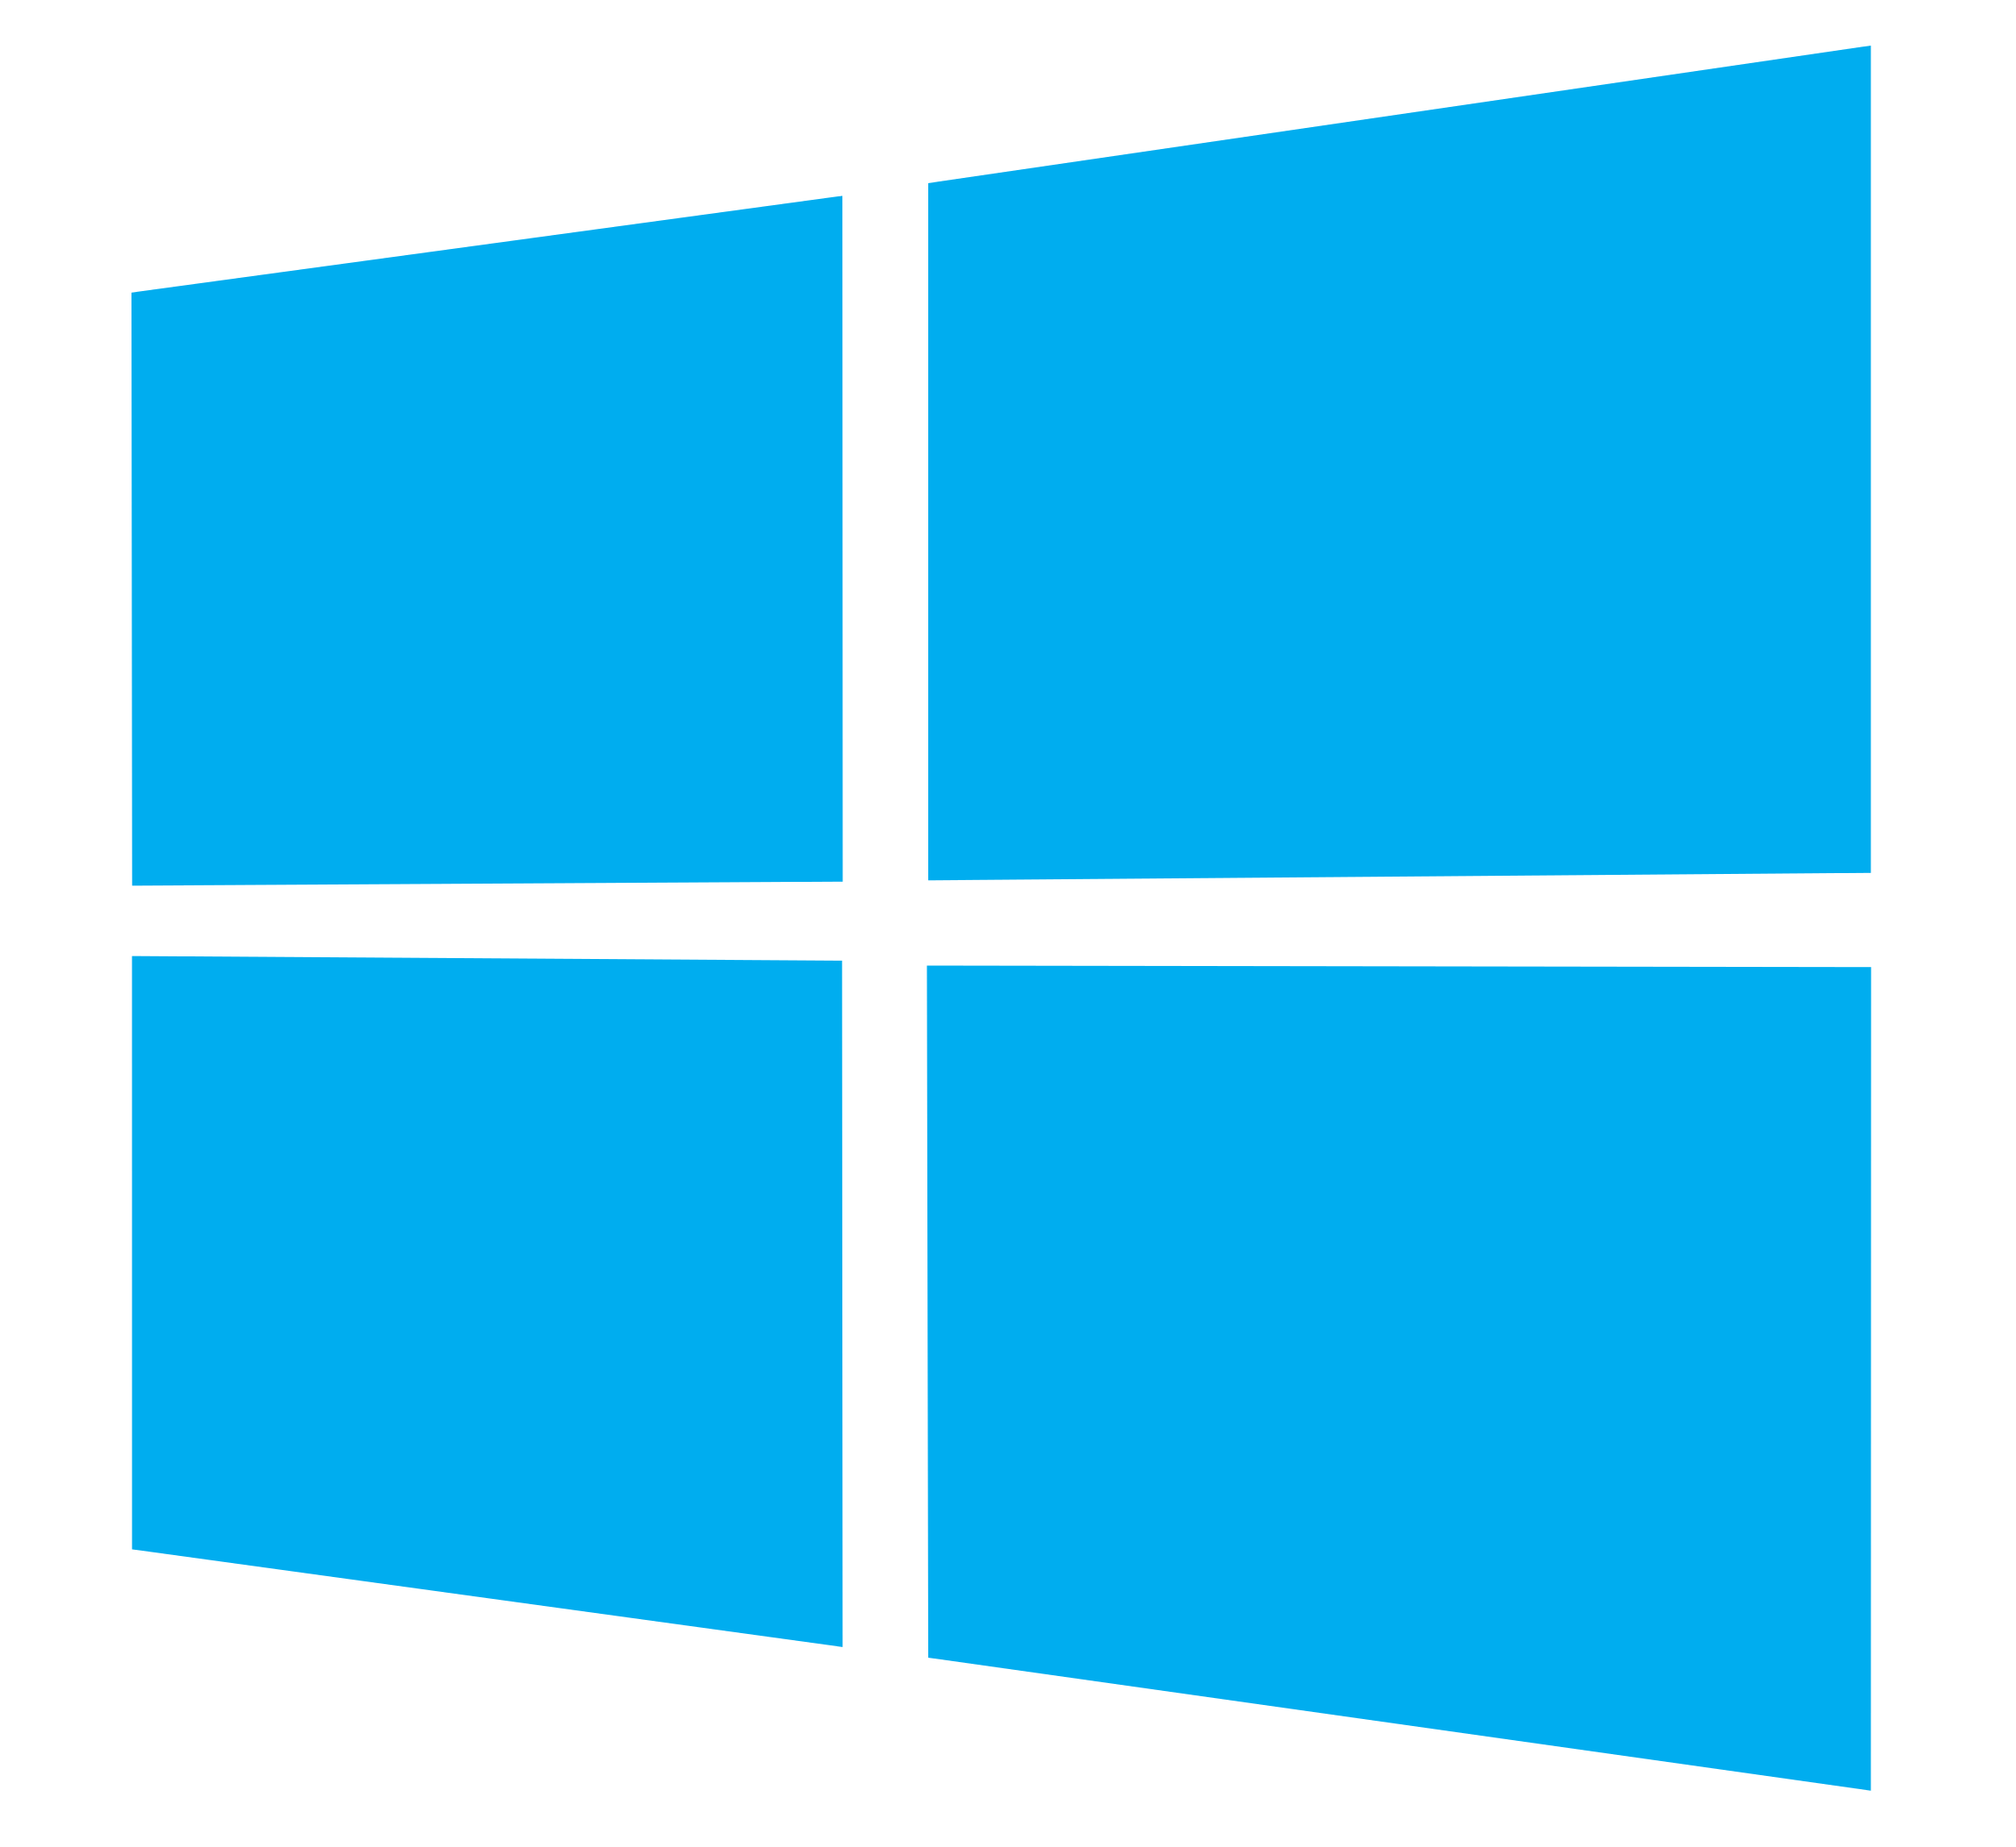 Windows Logo 300x275 1